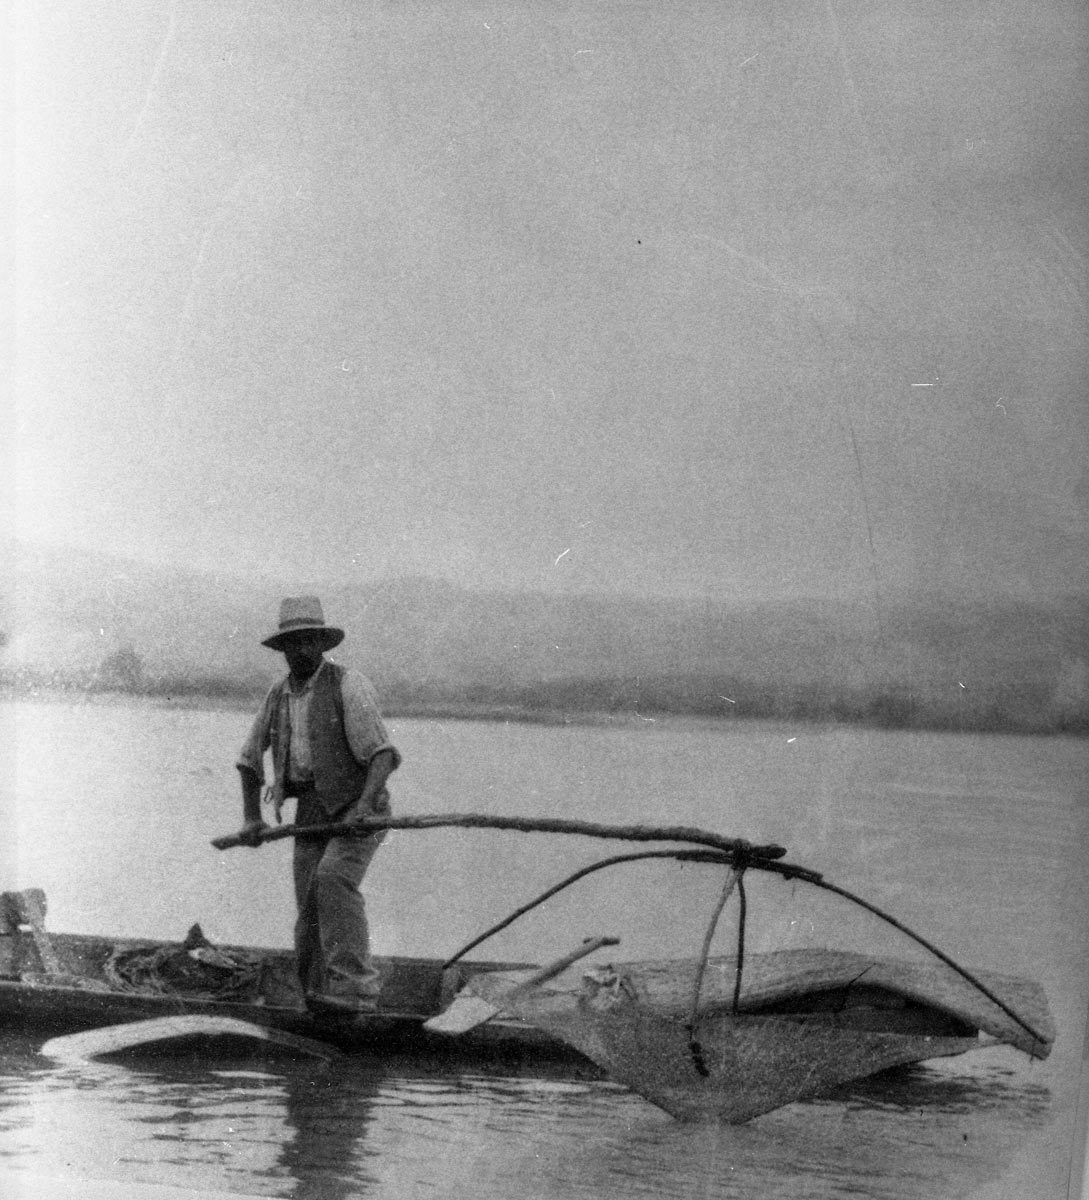 Fisherman on the Danube, early 20th century